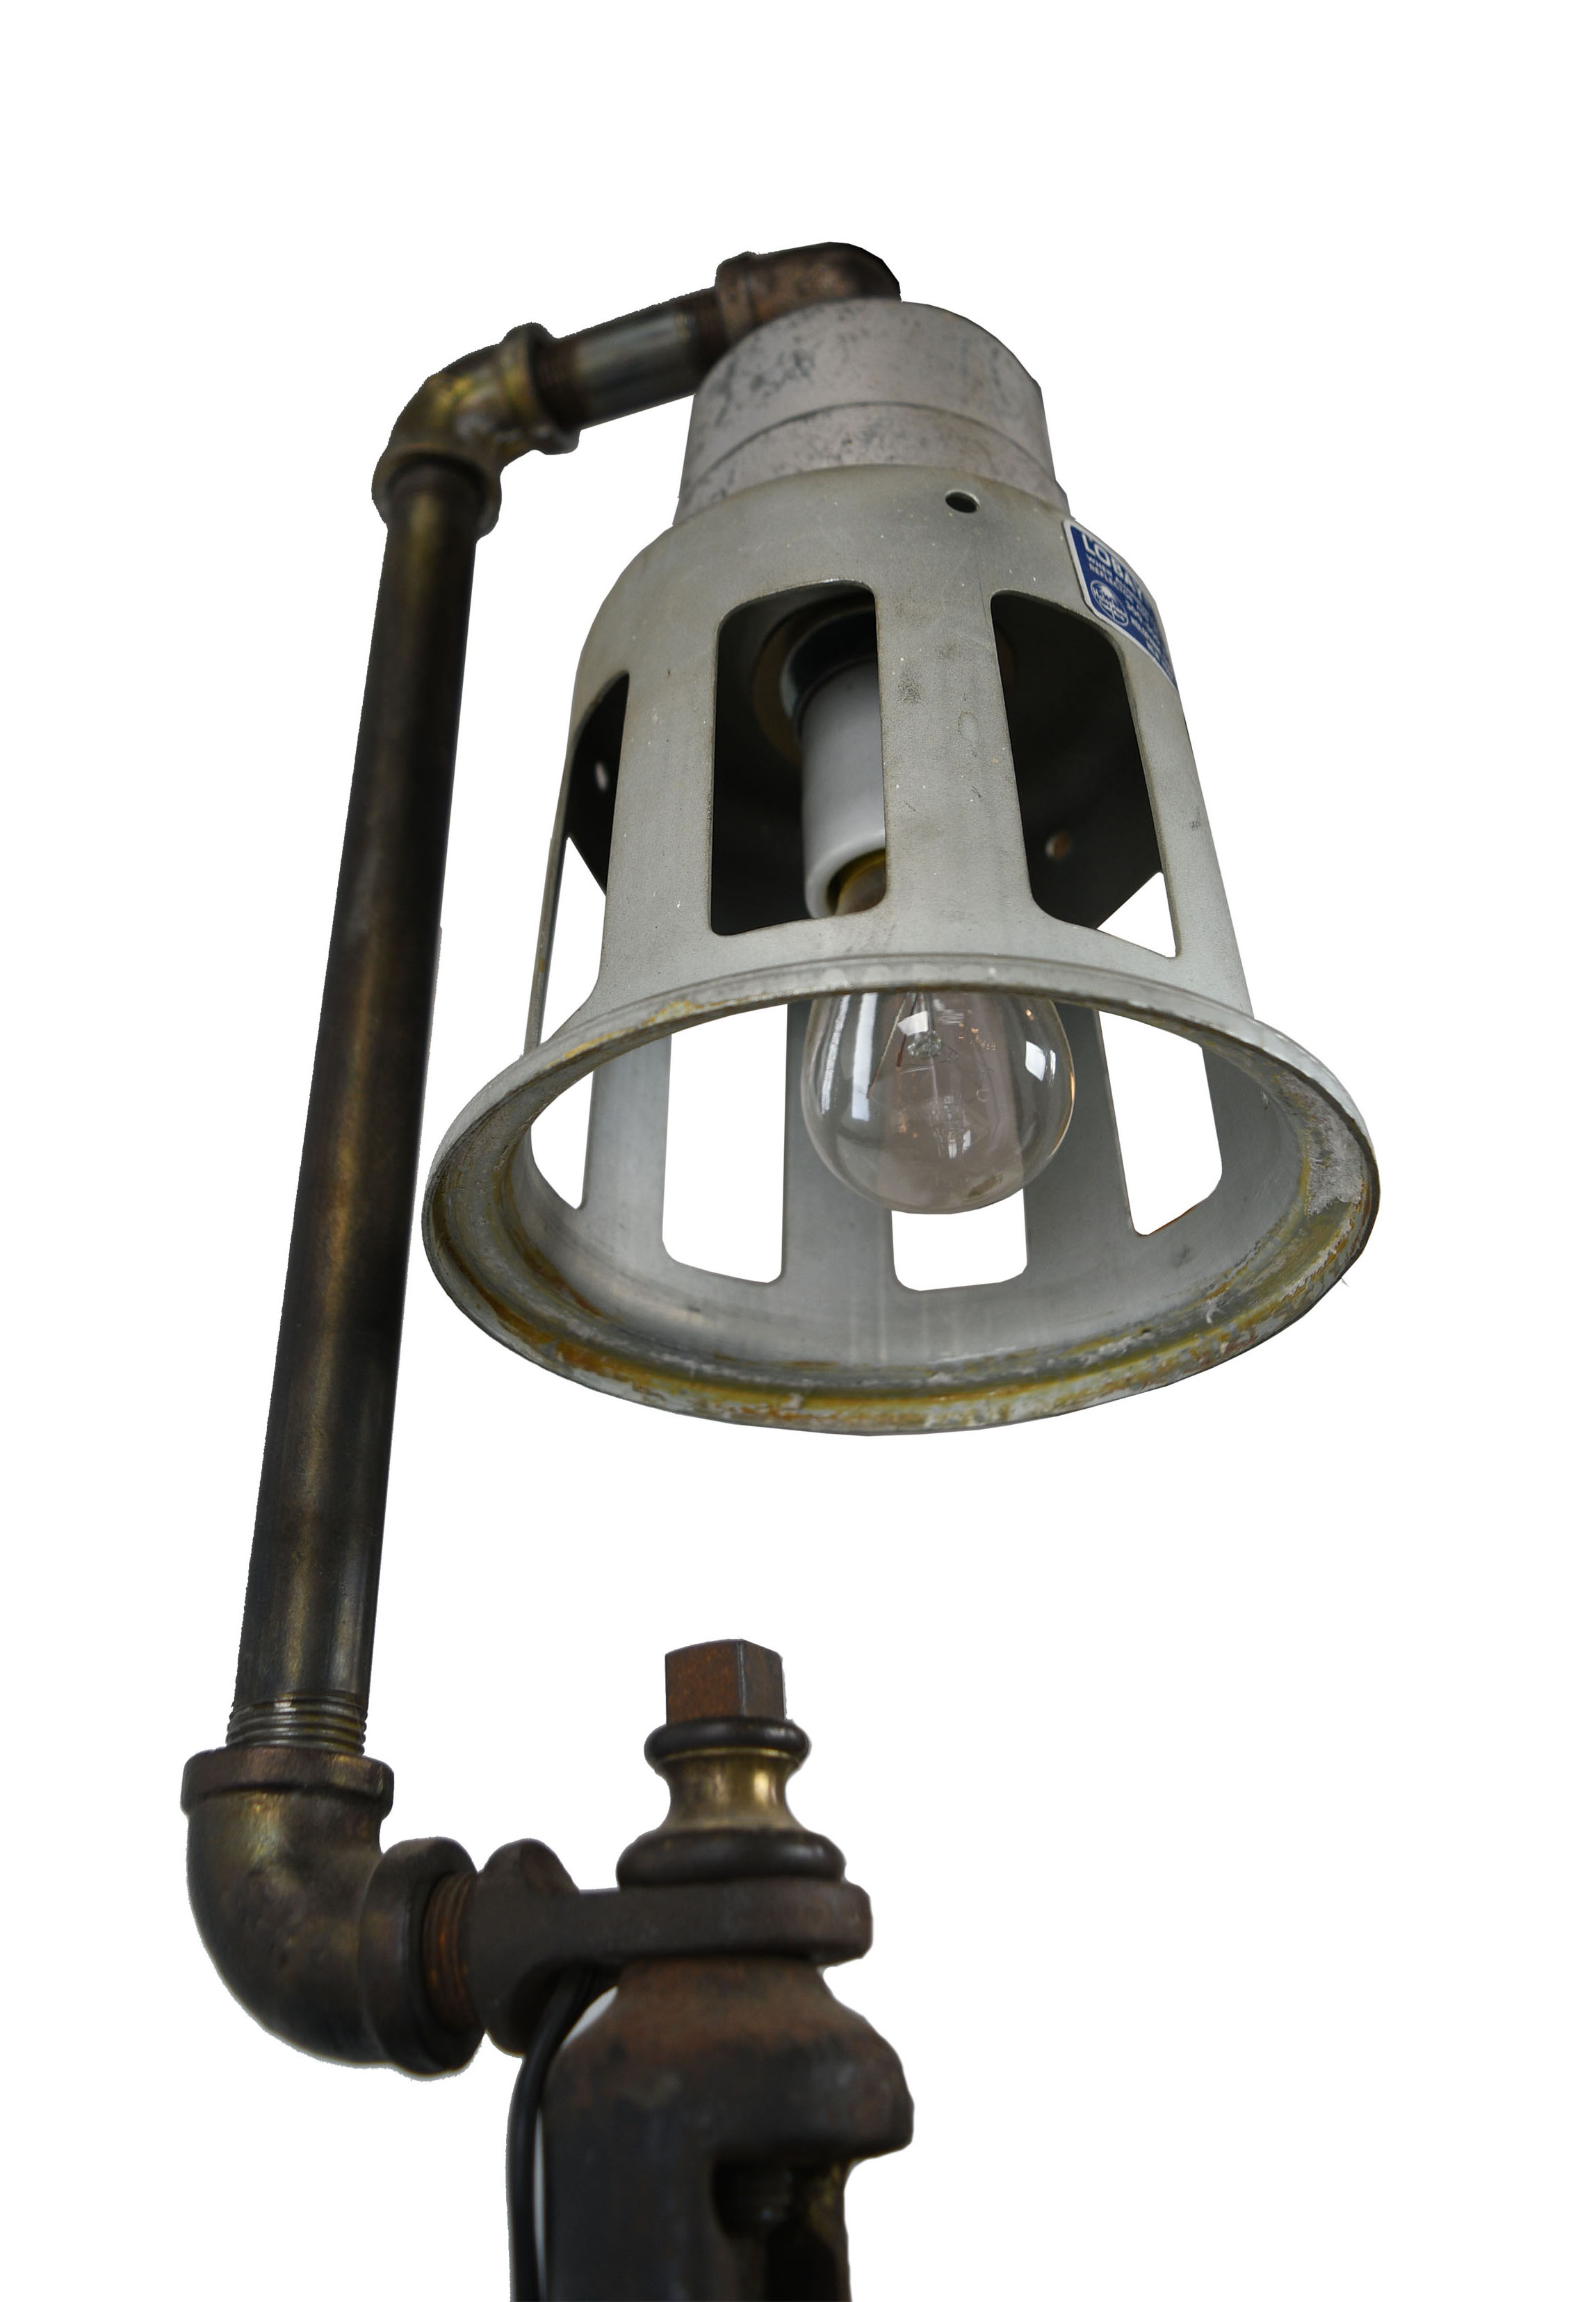 45177 industrial steampunk light top.jpg